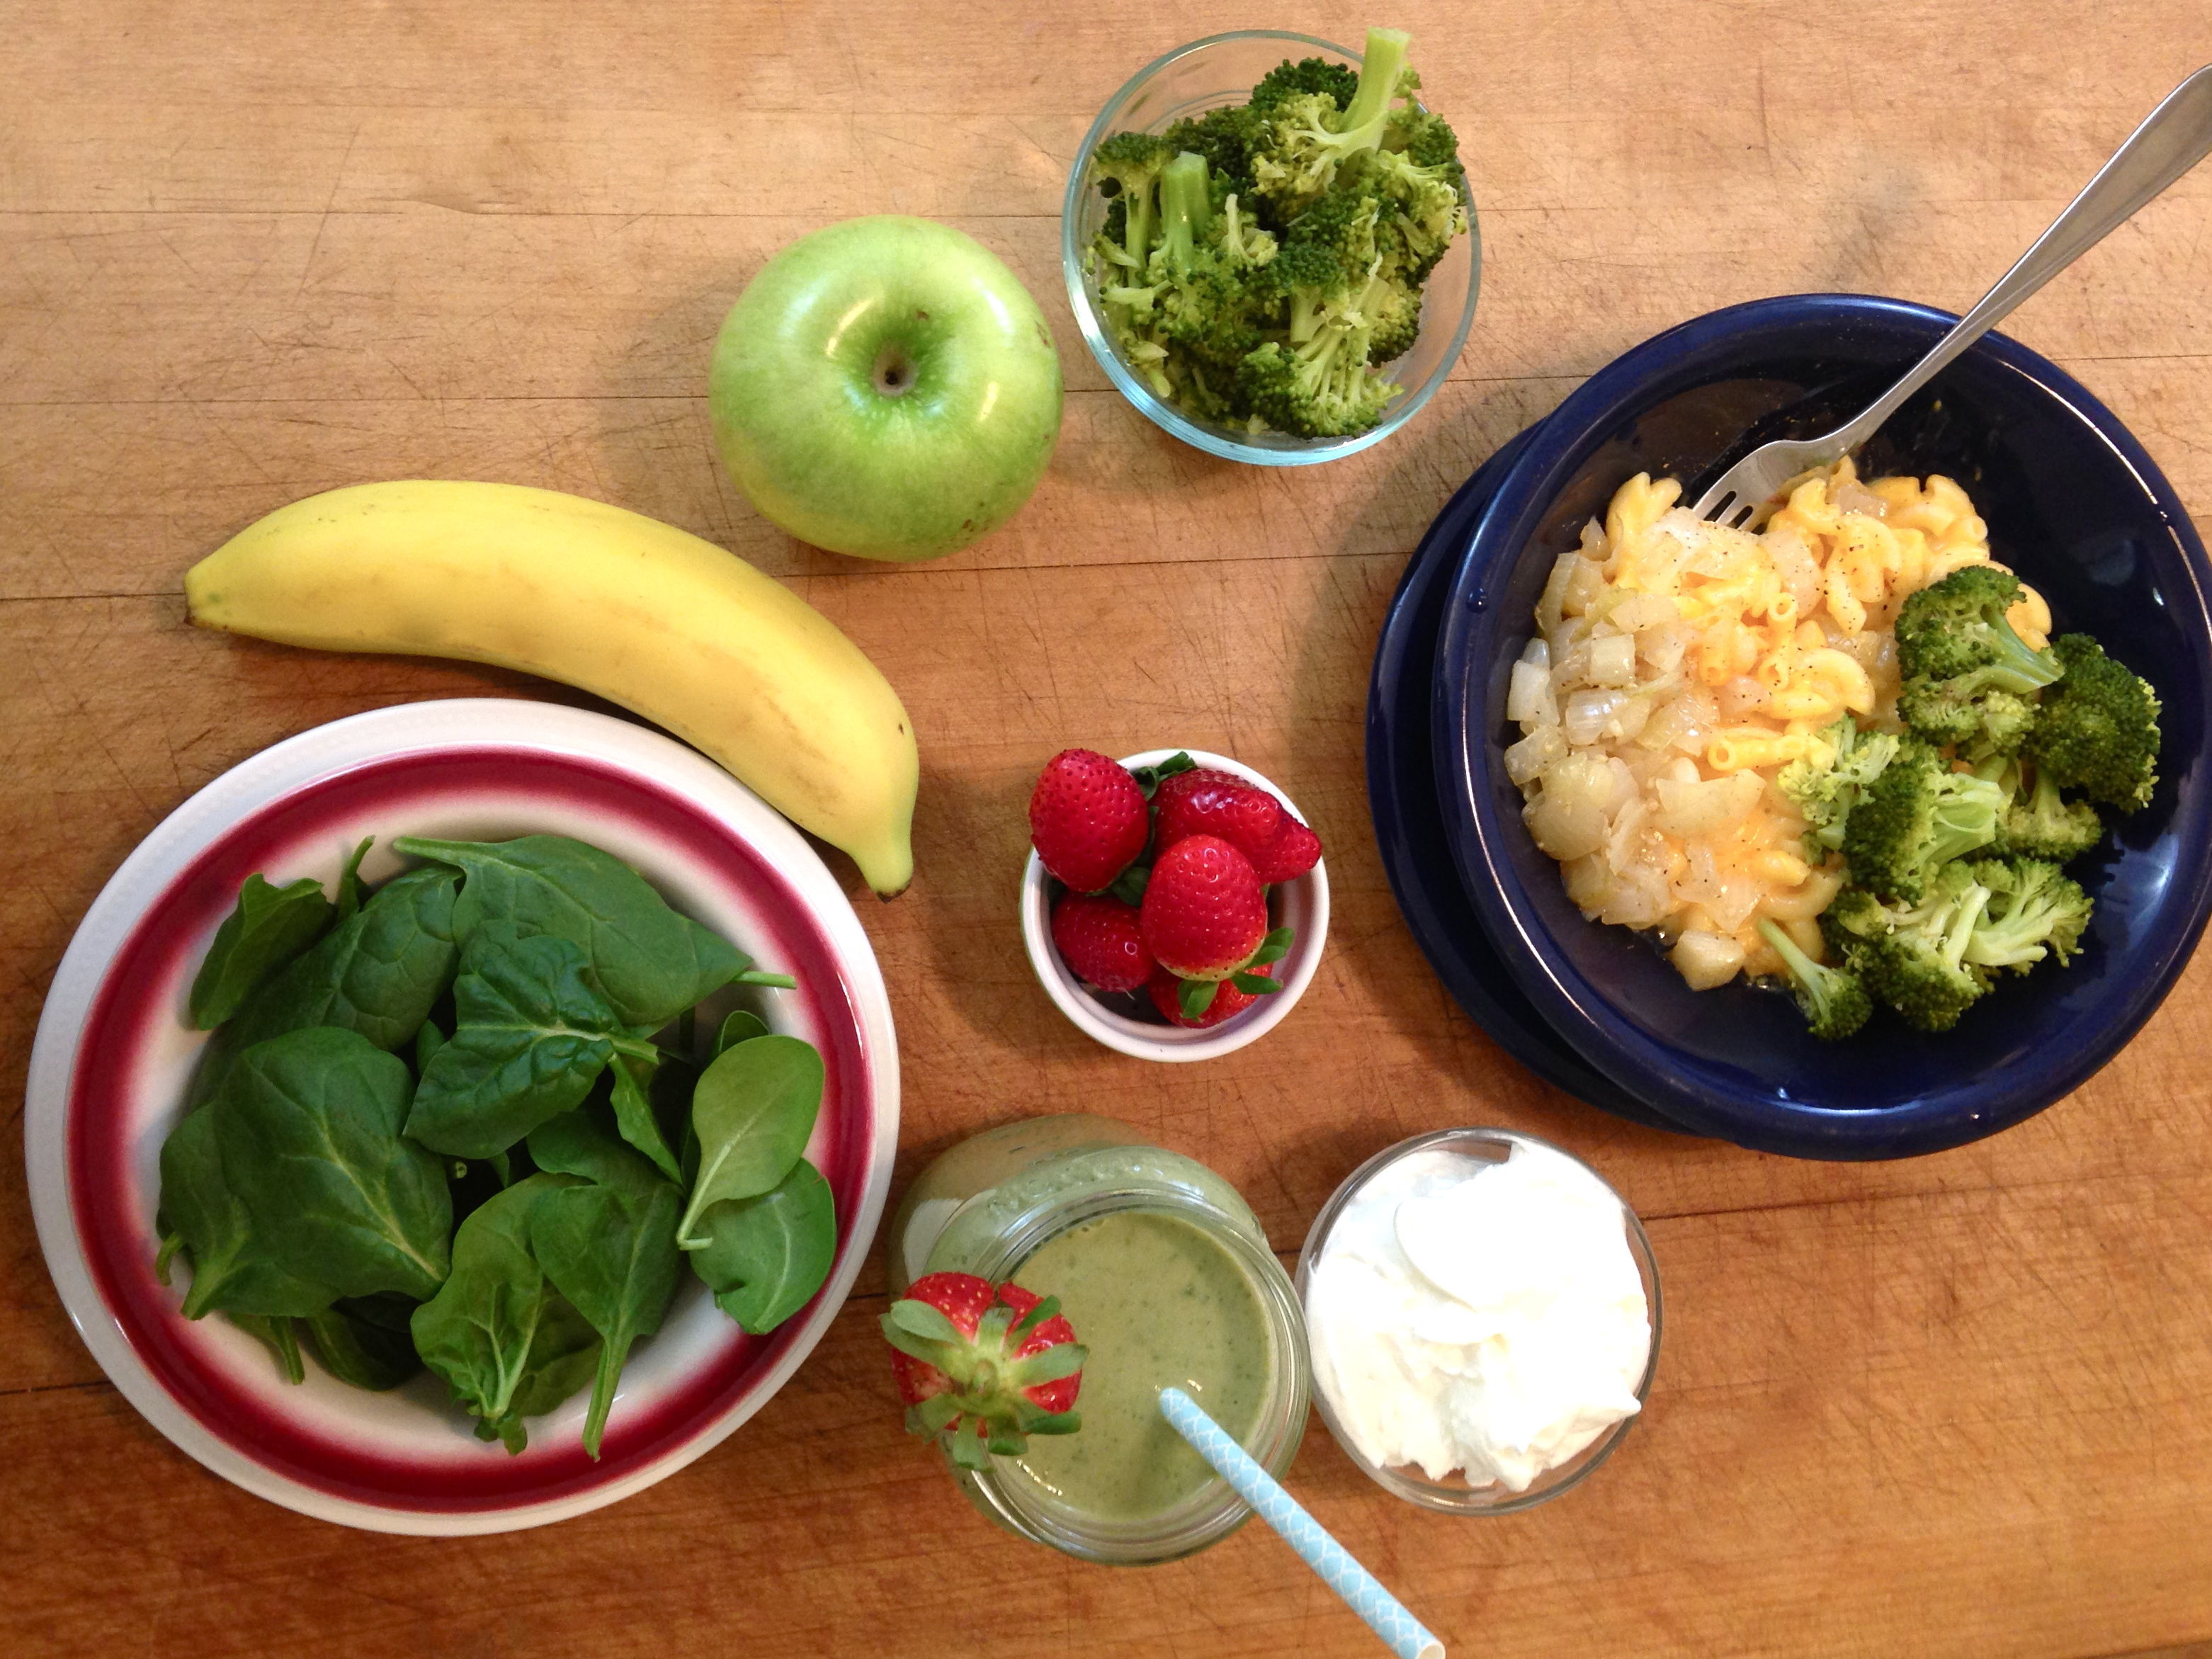 Two Recipes to Sneak Healthy Greens Into Your Diet